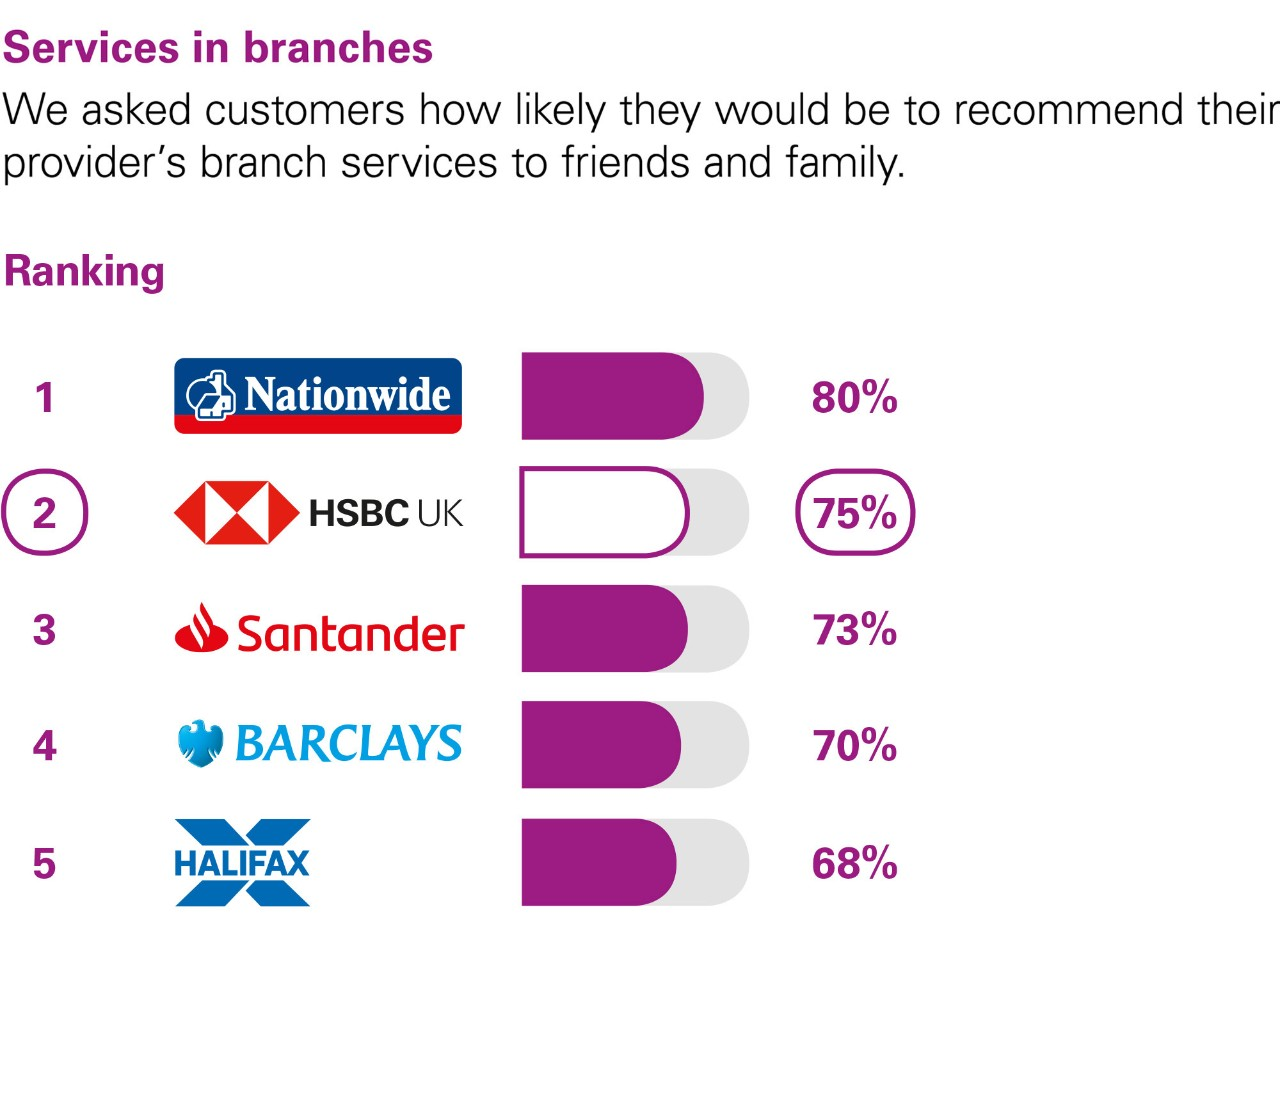 Services in branches. We asked customers how likely they would be to recommend their provider's branch services to friends and family. Ranking: 1 Nationwide 80%. 2 HSBC UK 75%. 3 Santander 73%. 4 Barclays 70%. 5 Halifax 68%.